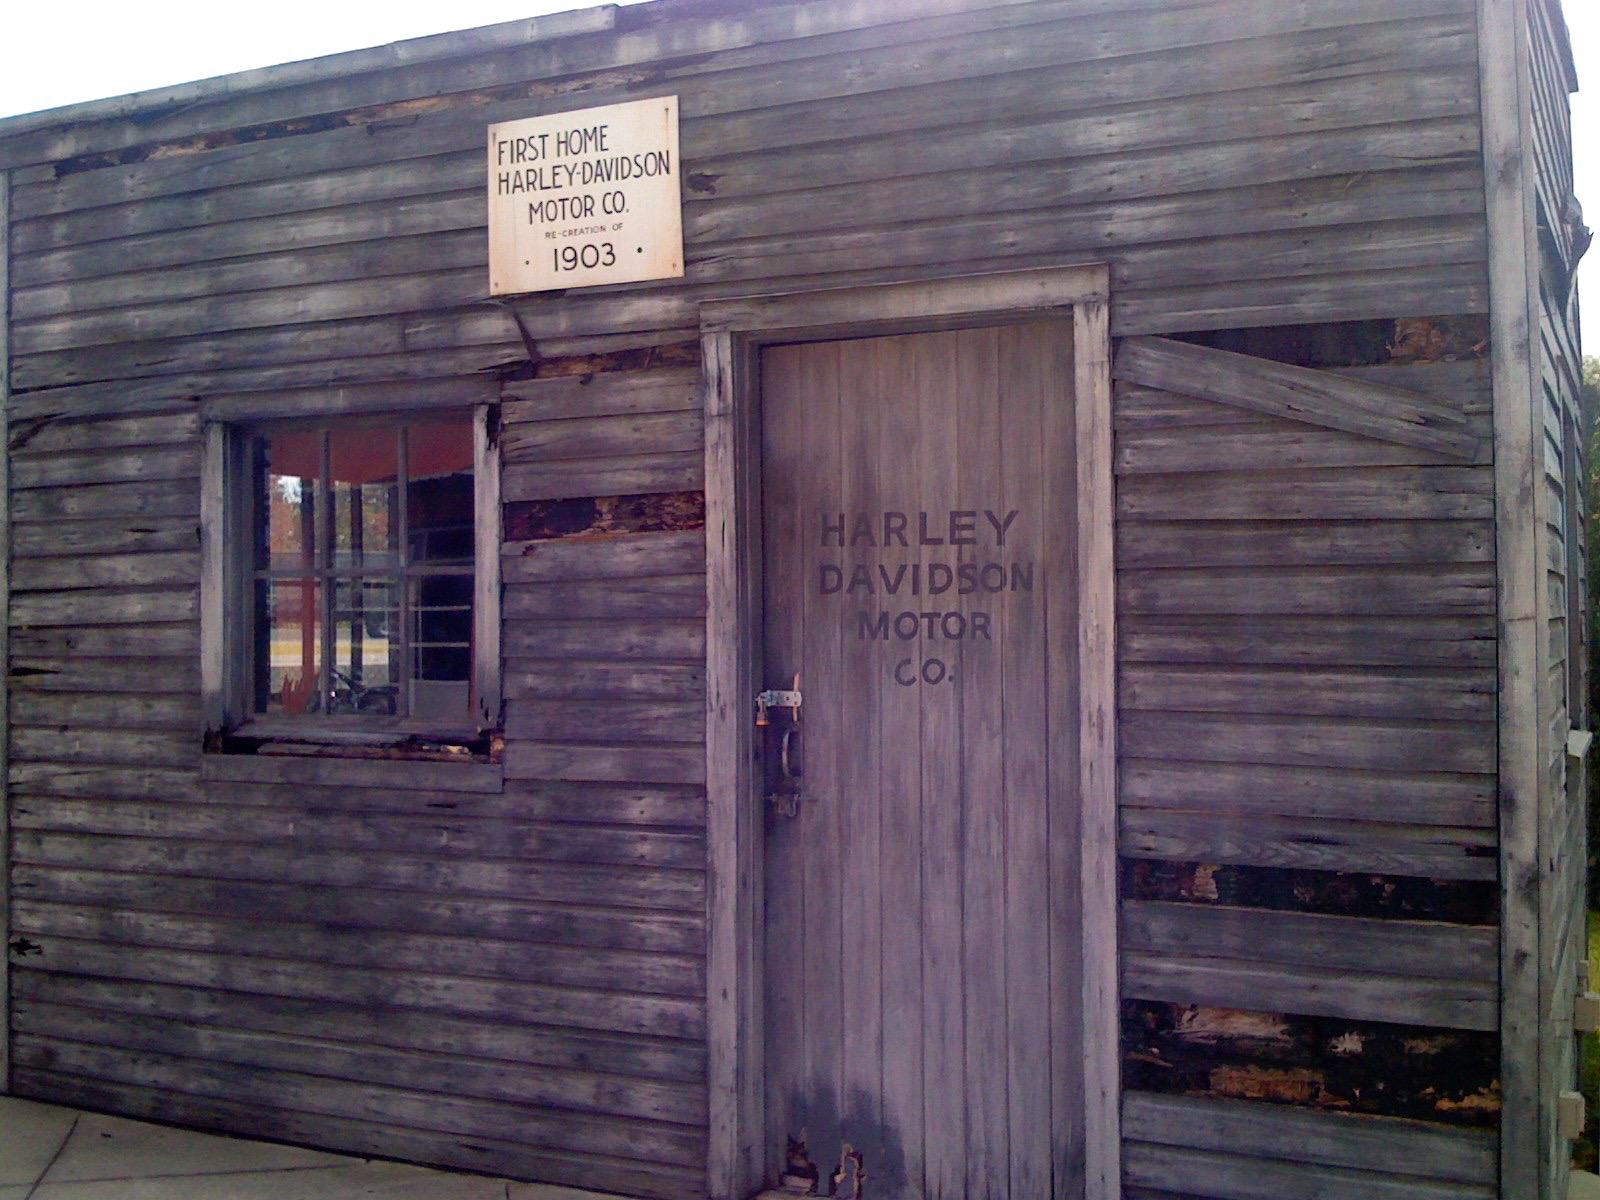 A replica of the first location where Harley Davidson got its start. Photo by J. Jeff Kober.